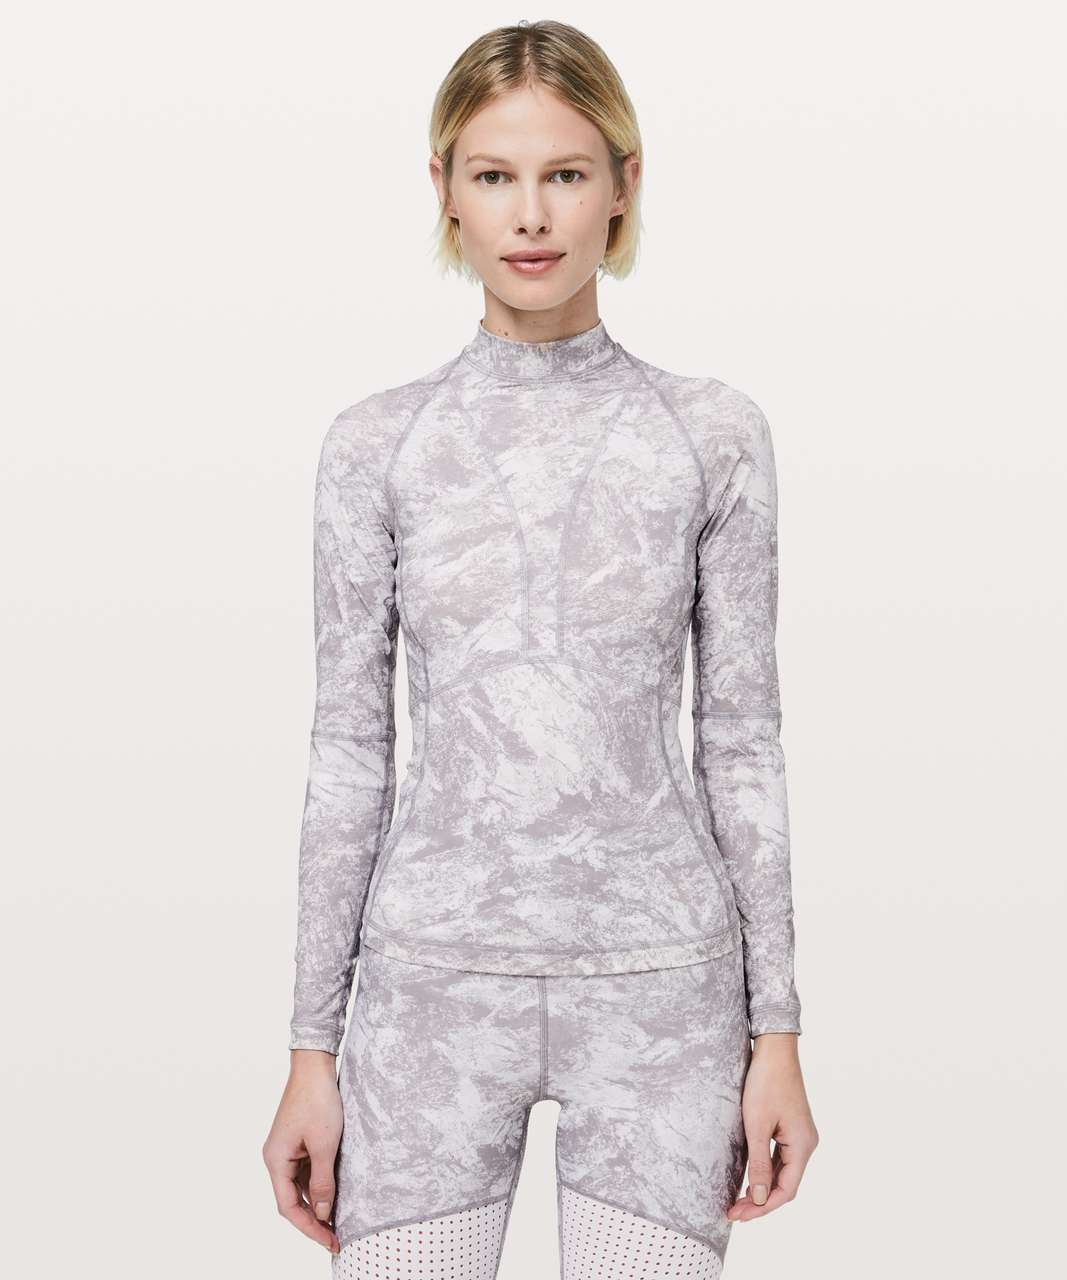 Lululemon Beach Break Rashguard - Washed Marble Alpine White Silverscreen